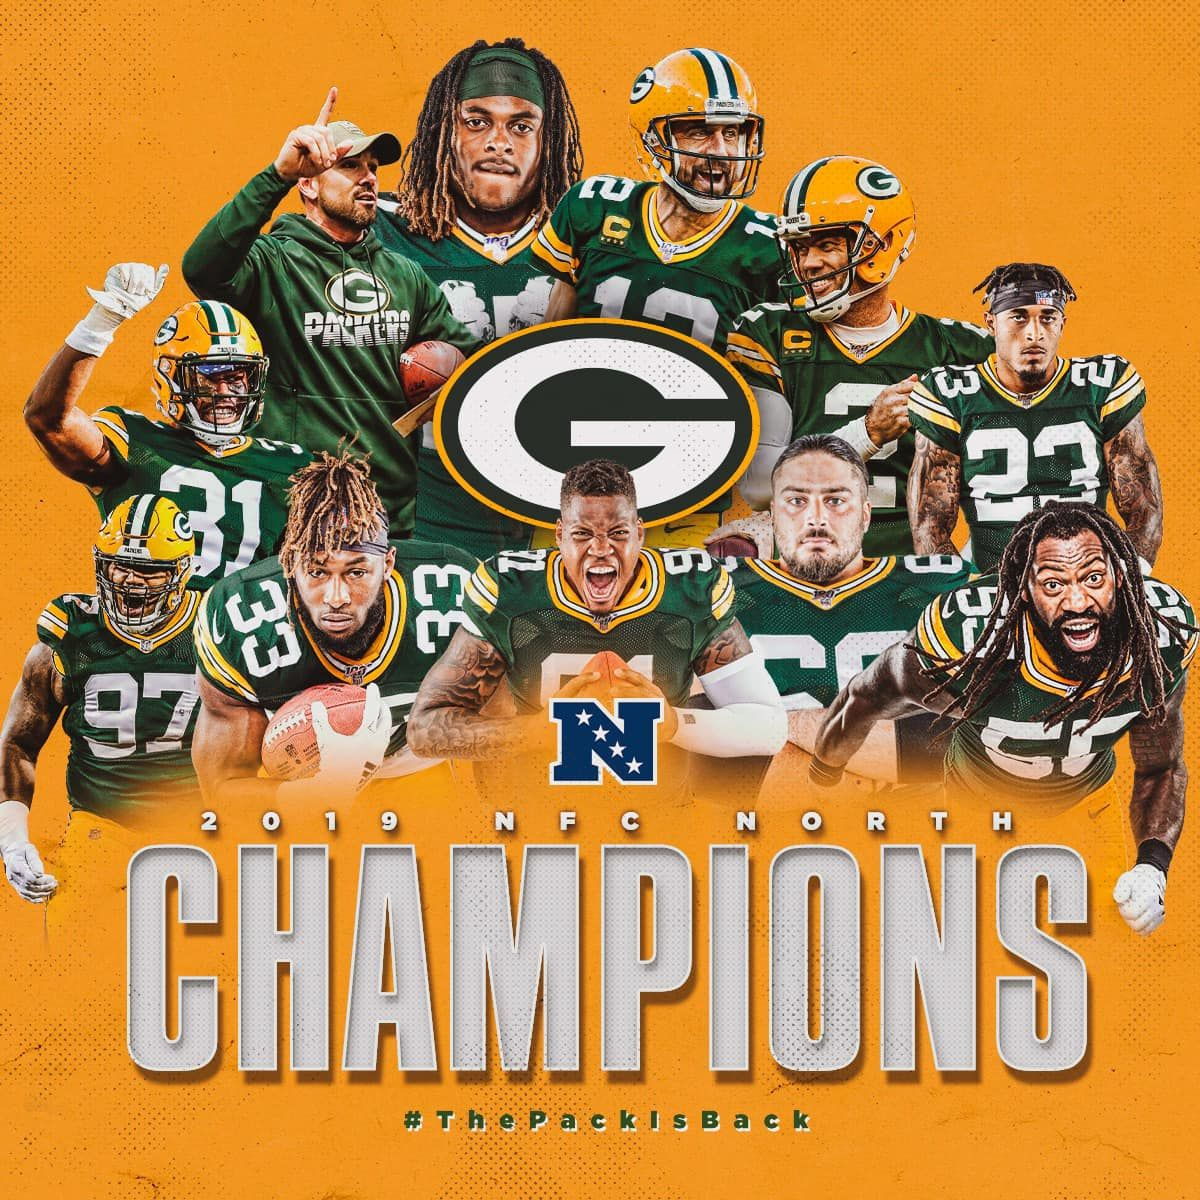 Nfc North Champions Green Bay Packers Green Bay Packers Football Green Bay Packers Fans